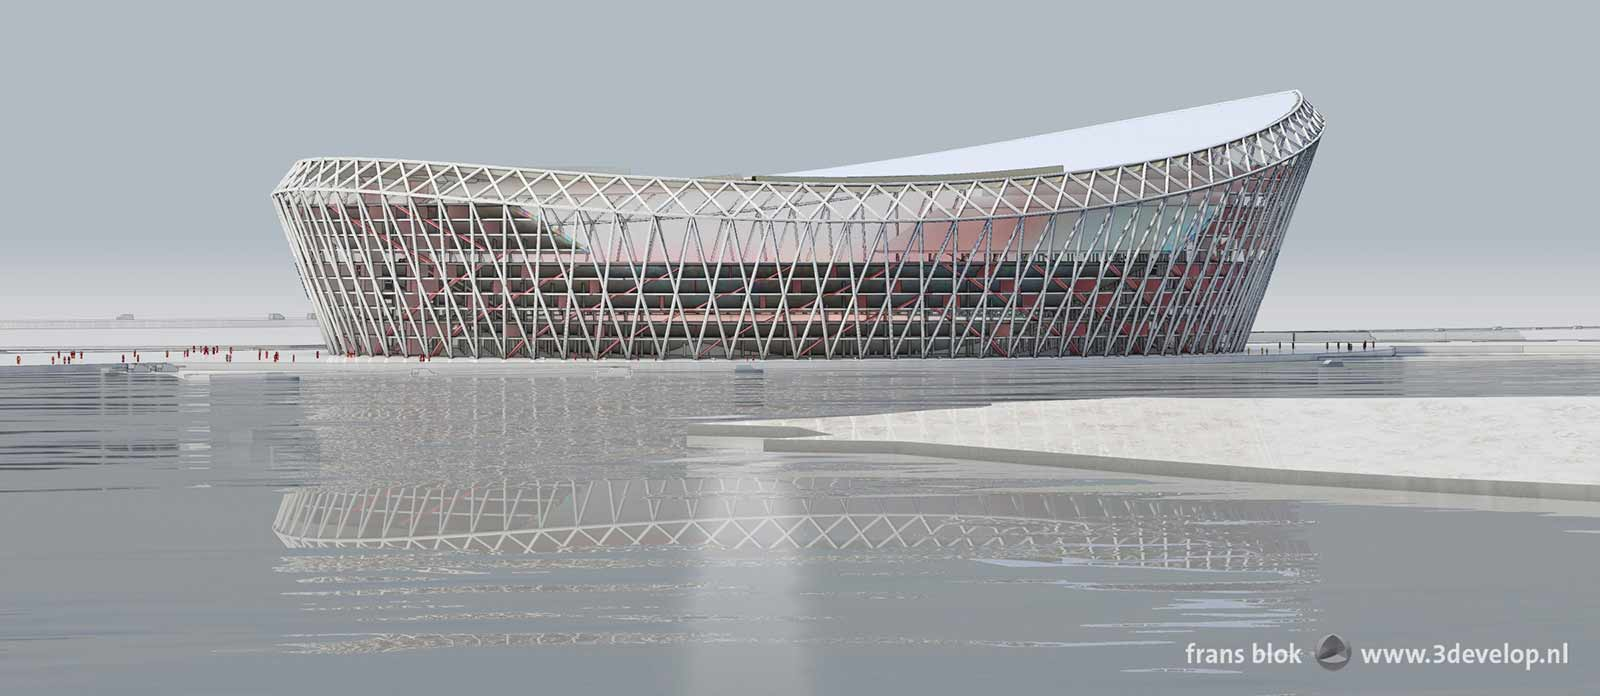 The proposed new stadium for Feyenoord, The Barge, as seen from the traffic jam on Brienenoord bridge